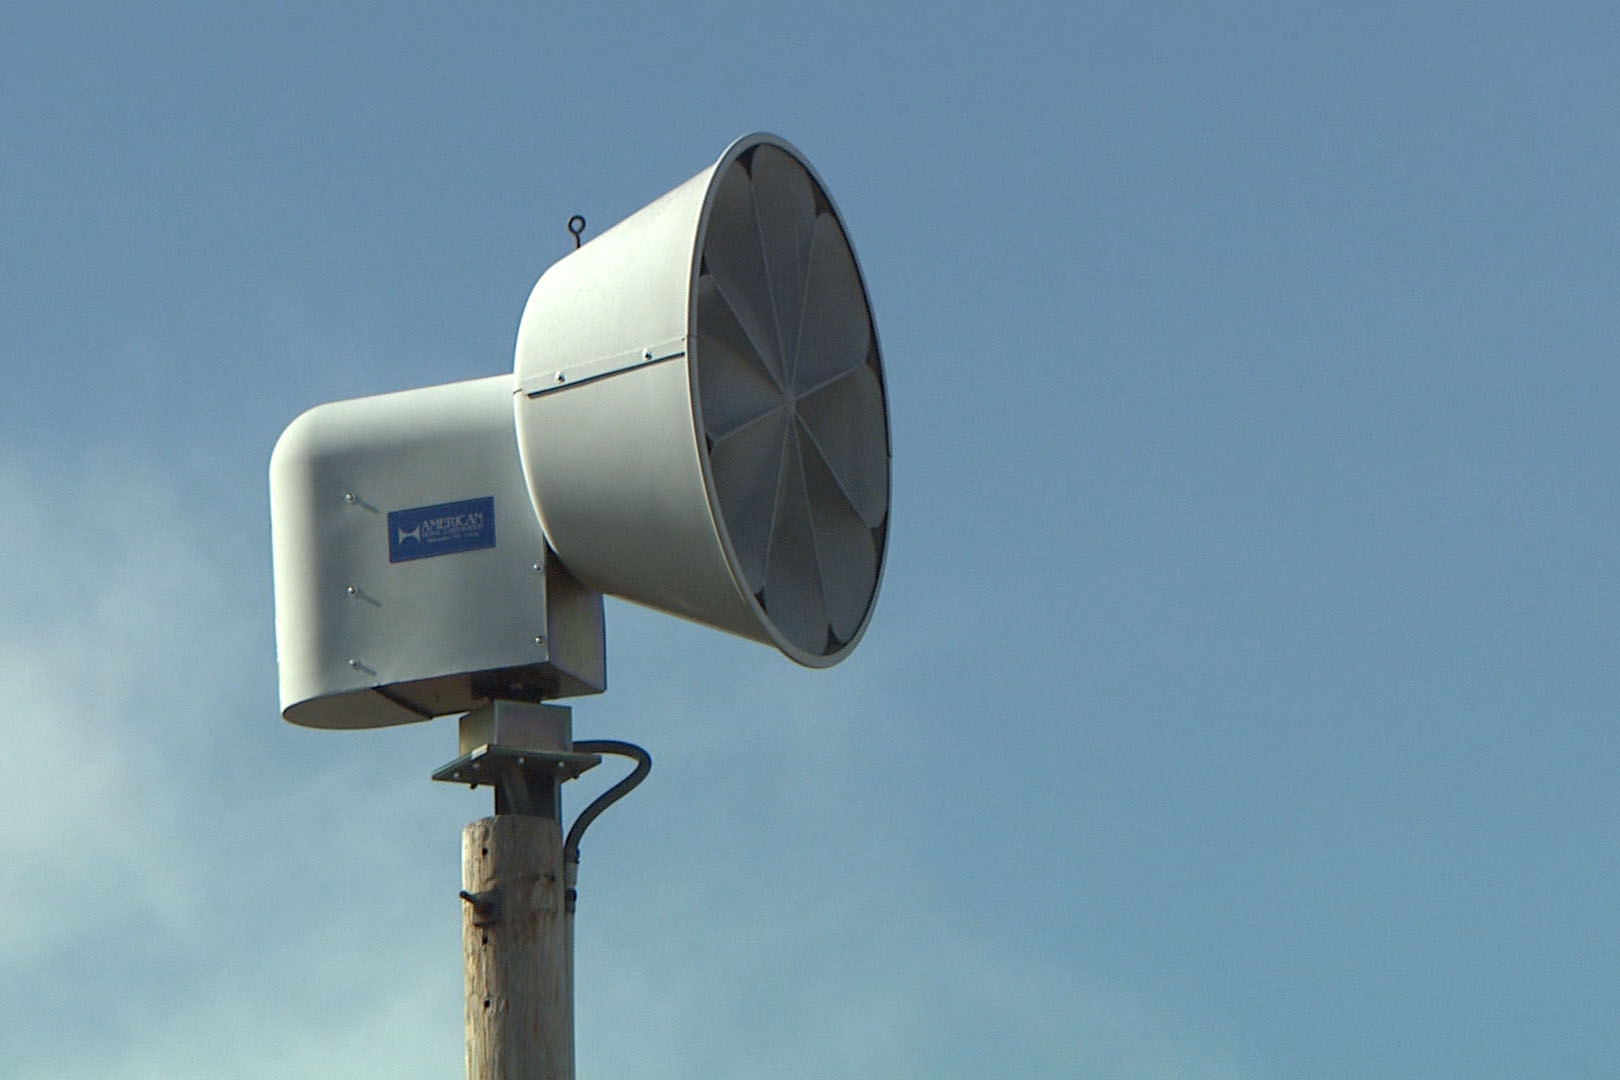 Tornado sirens are used differently throughout Indiana's counties